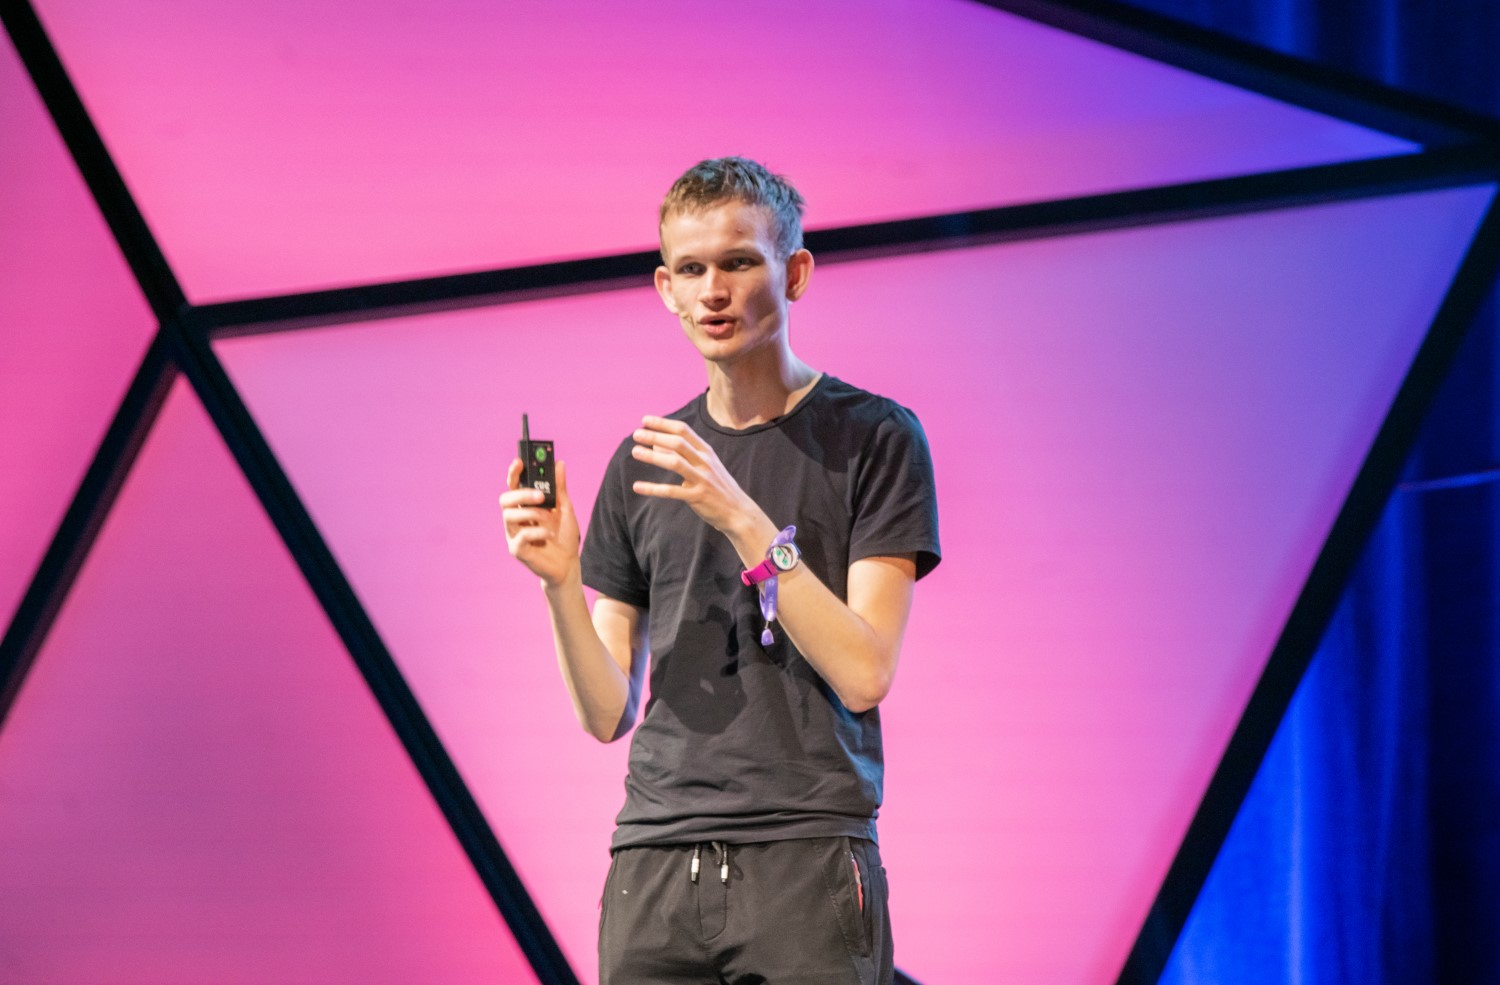 Ethereum Creator Vitalik Buterin Proposes Wallet Fee to Fund Developers - CoinDesk